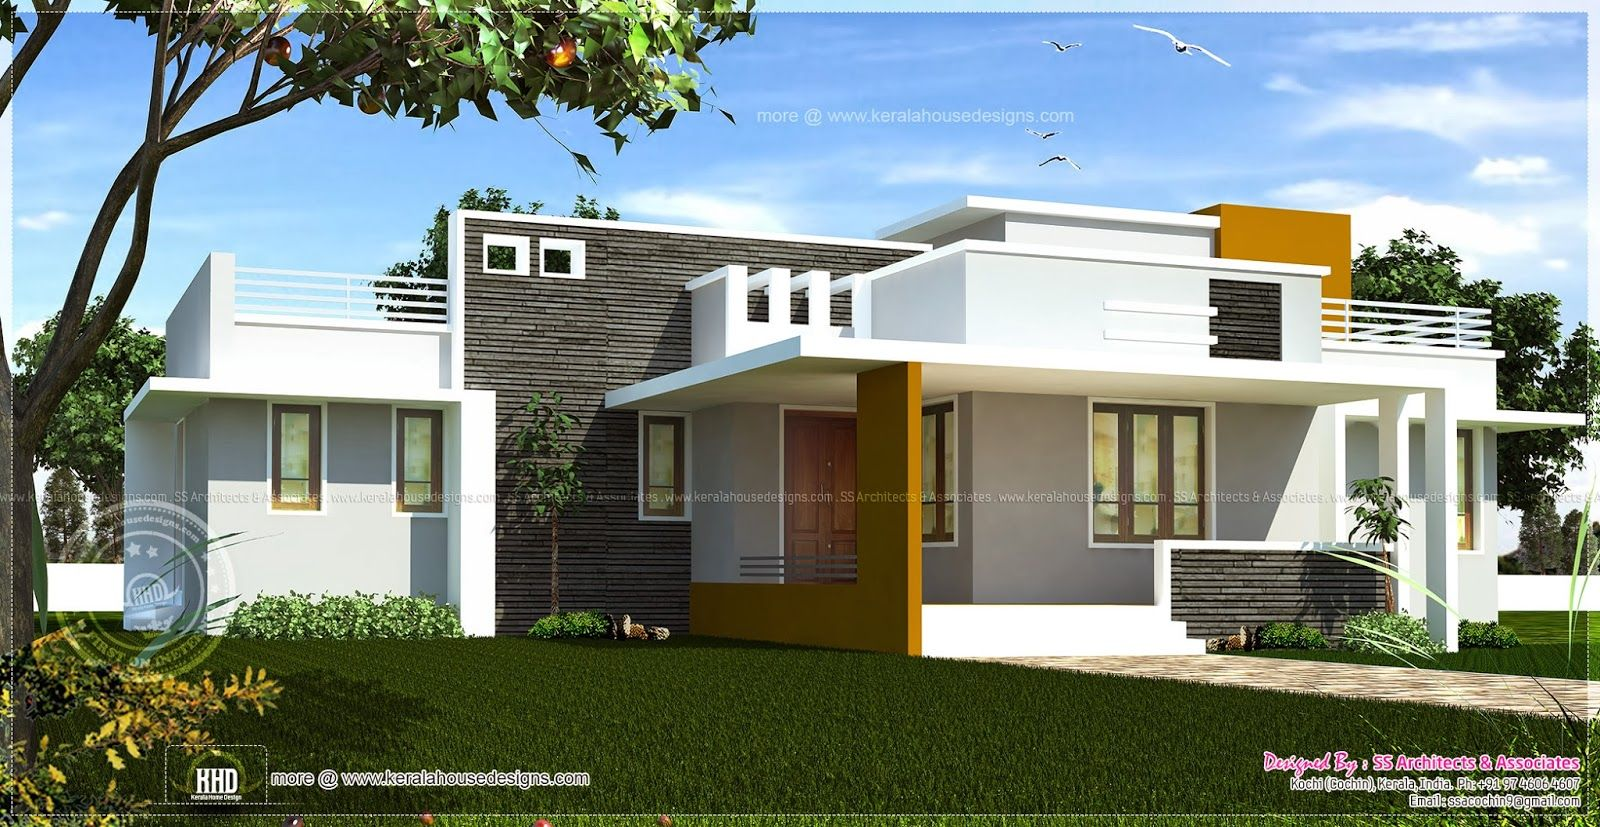 Excellent single home designs single floor contemporary for Single floor house plans